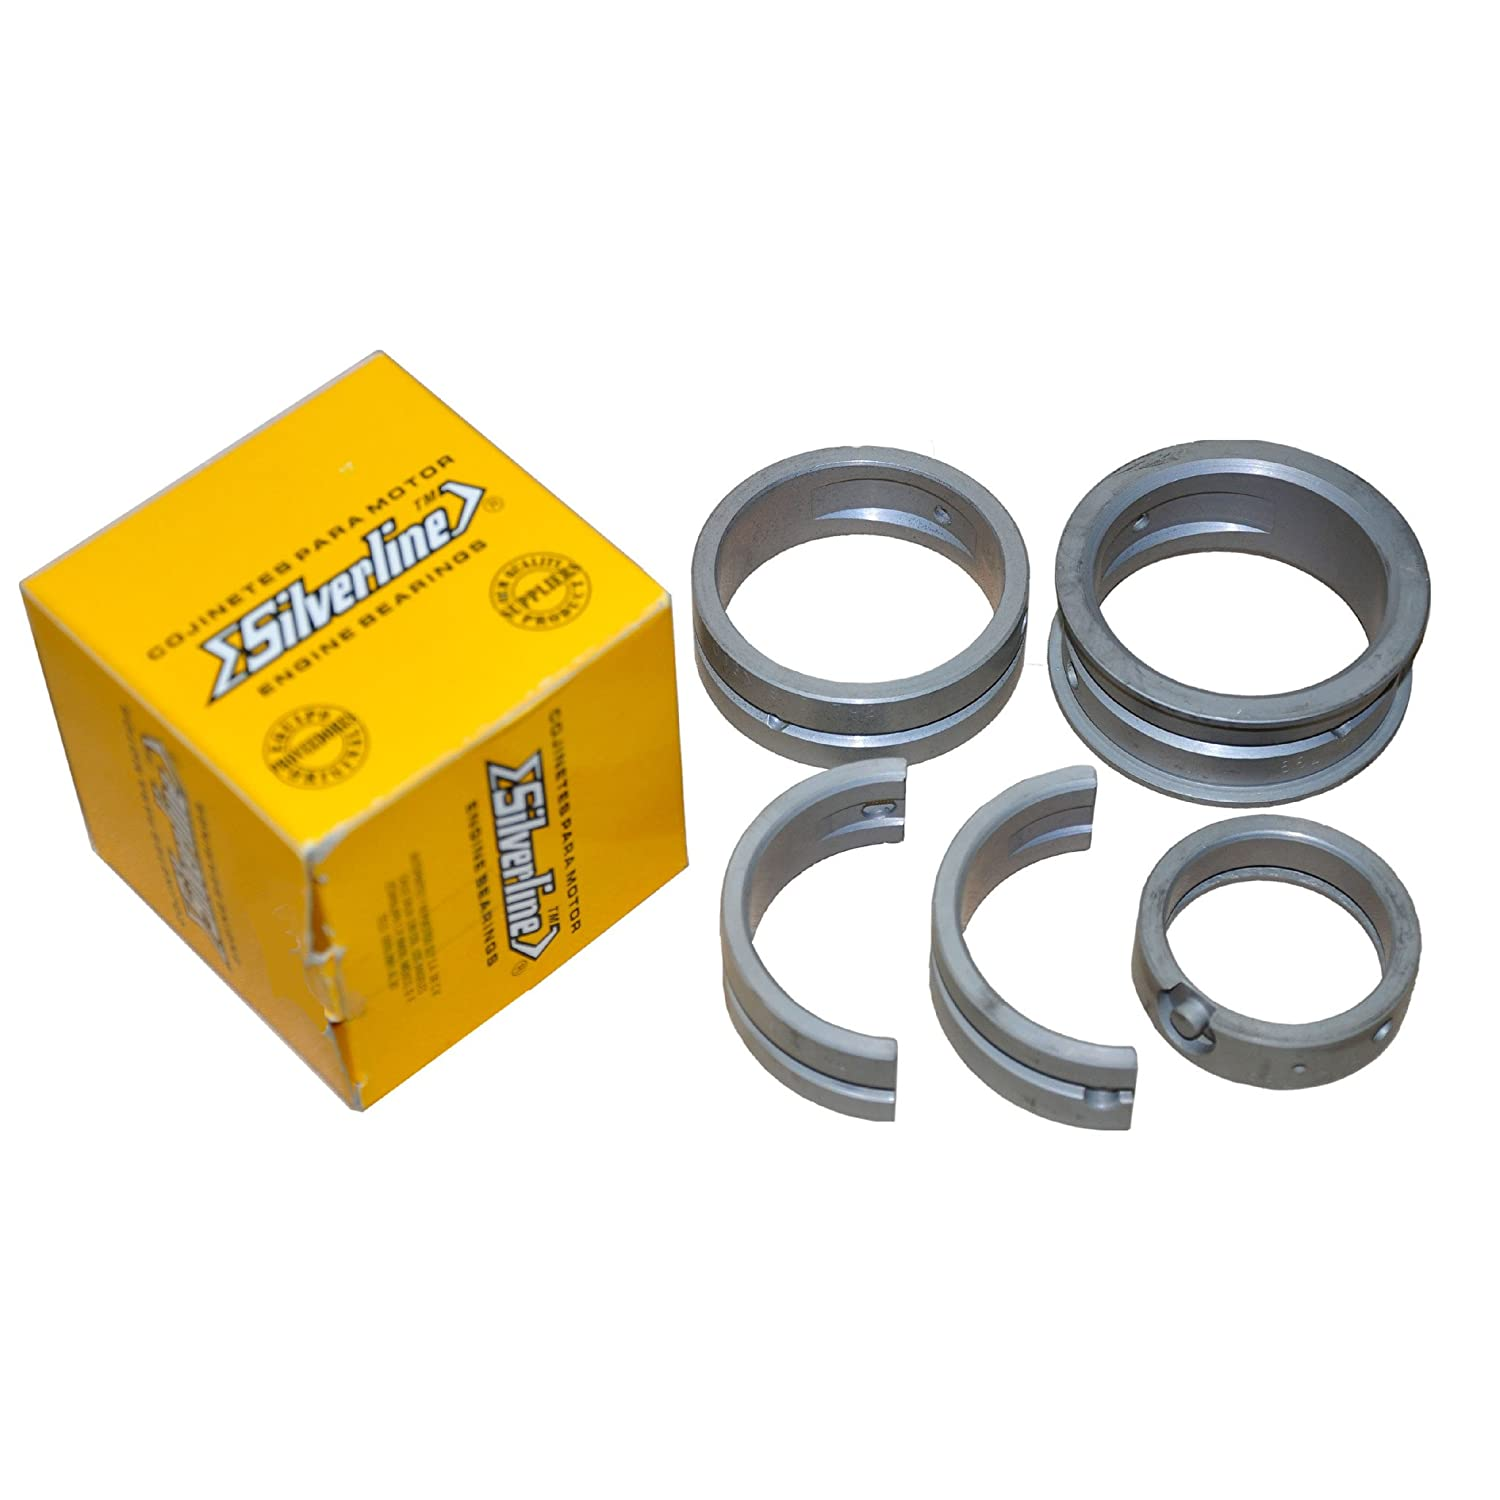 AA Performance Products Silver Line Main Bearings for Type 1 2 /& 3Steel Backed Size .040 Case//STD Crank